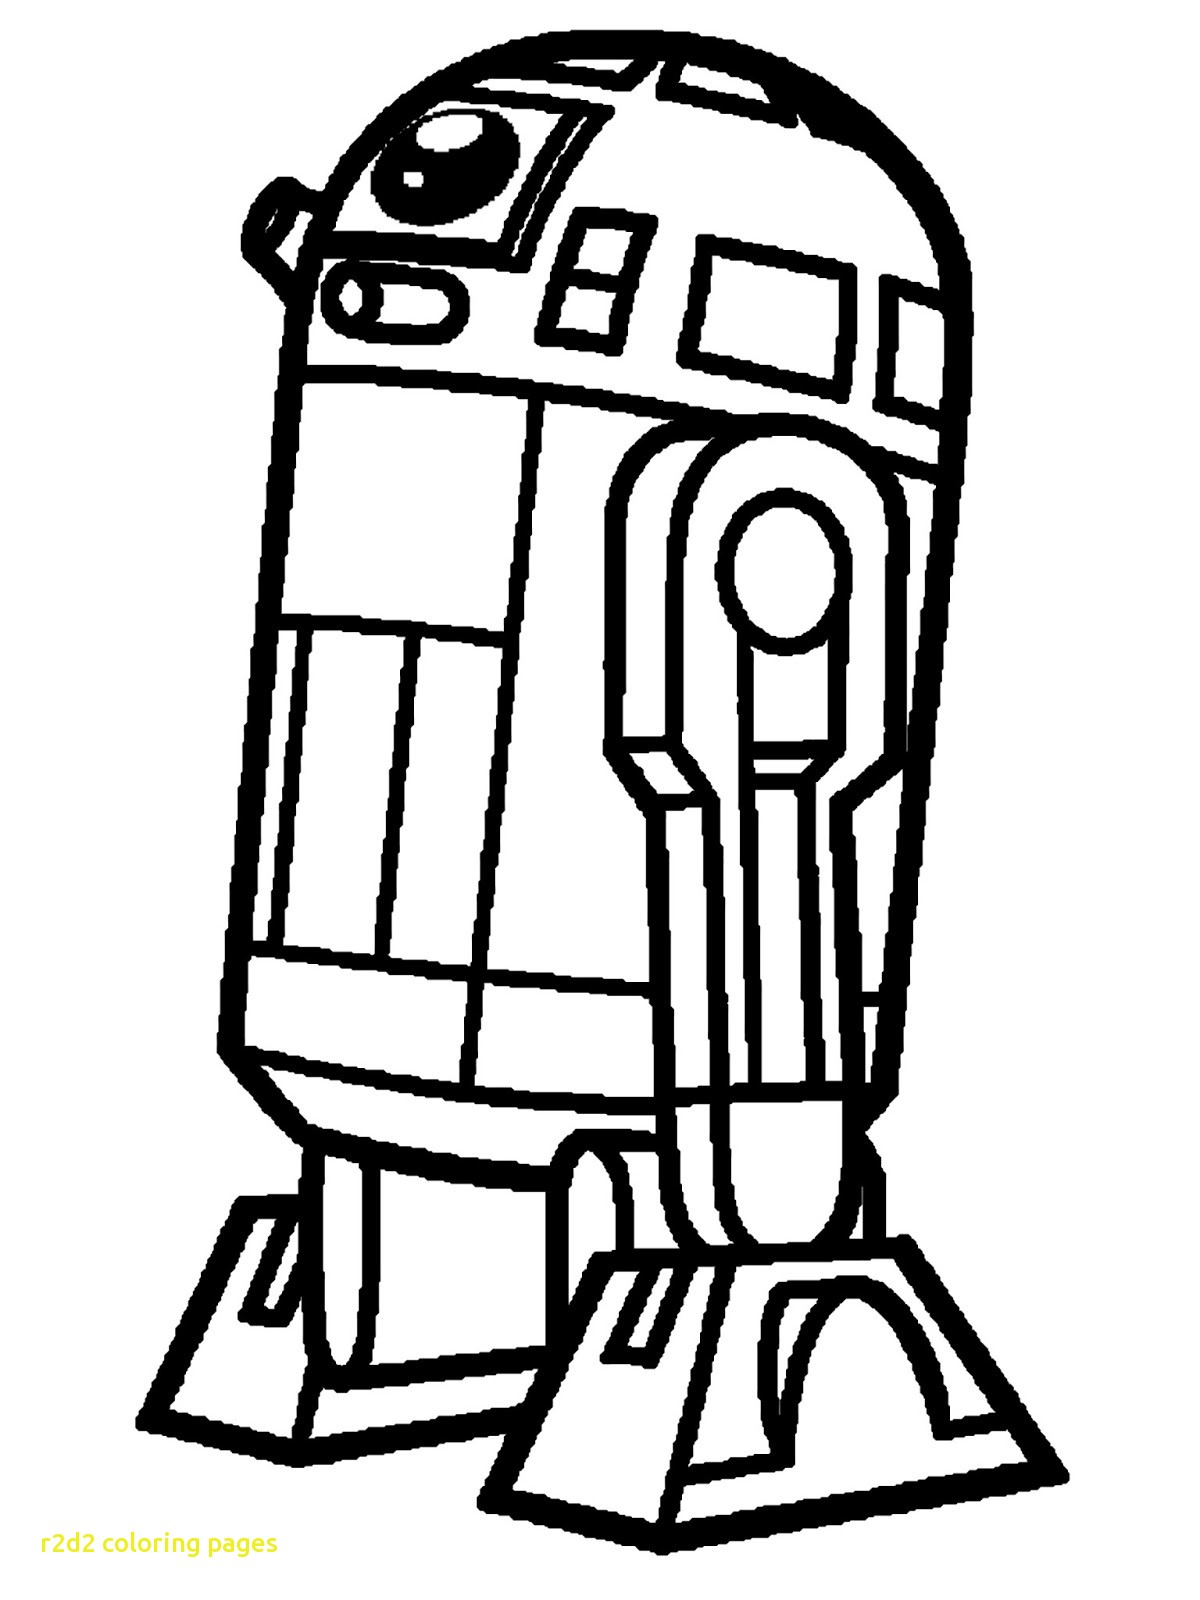 R2d2 And C3po Coloring Pages At Getdrawings Com Free For Personal